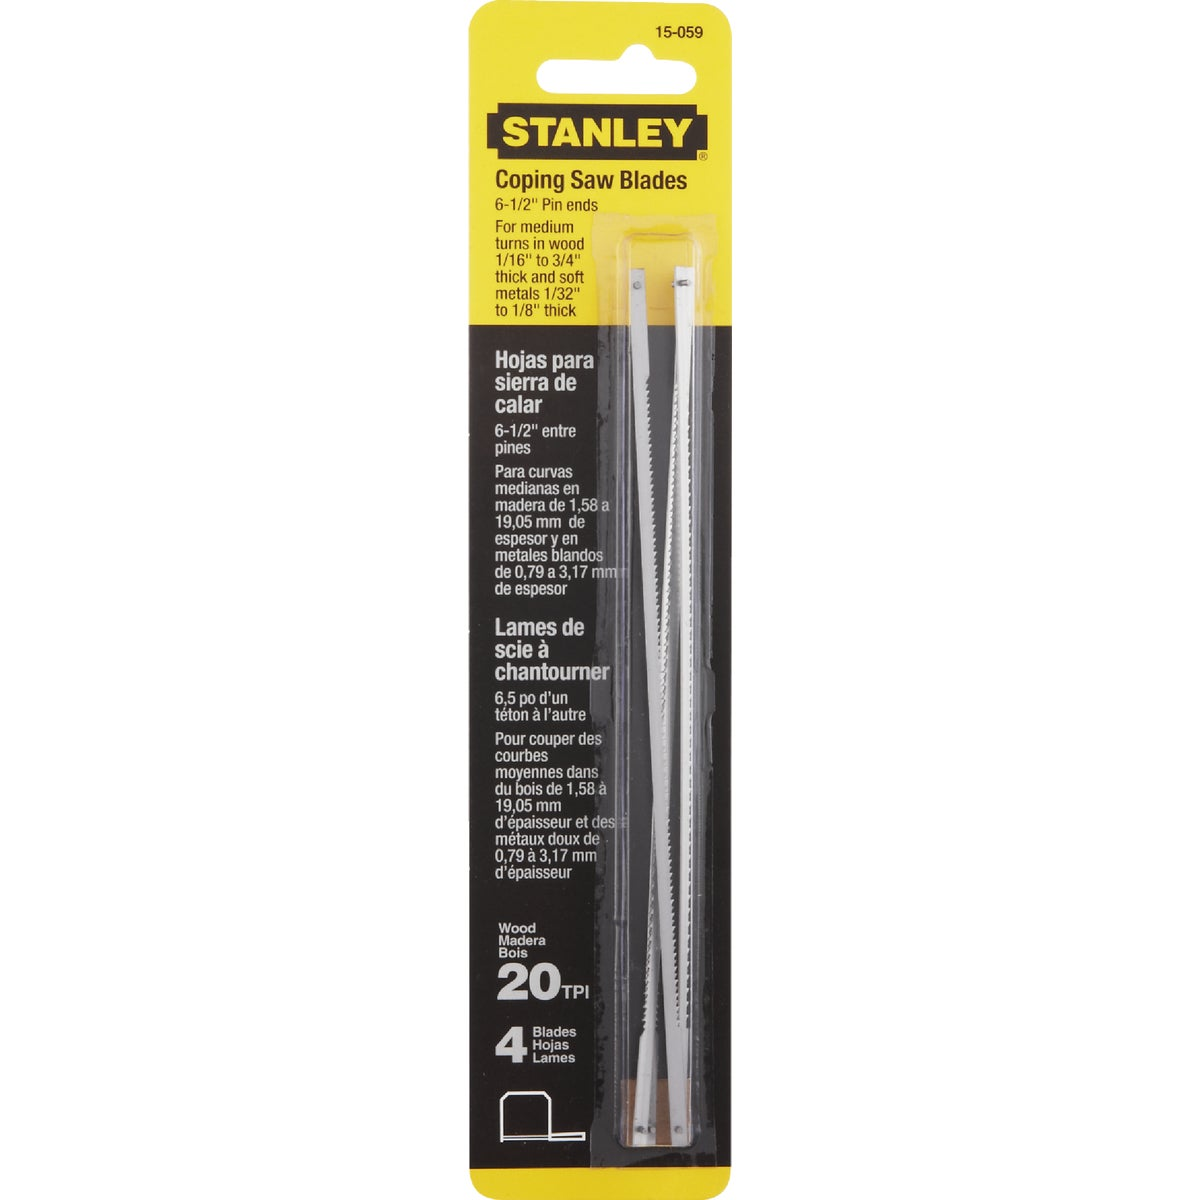 Stanley COPING SAW BLADE 15-059